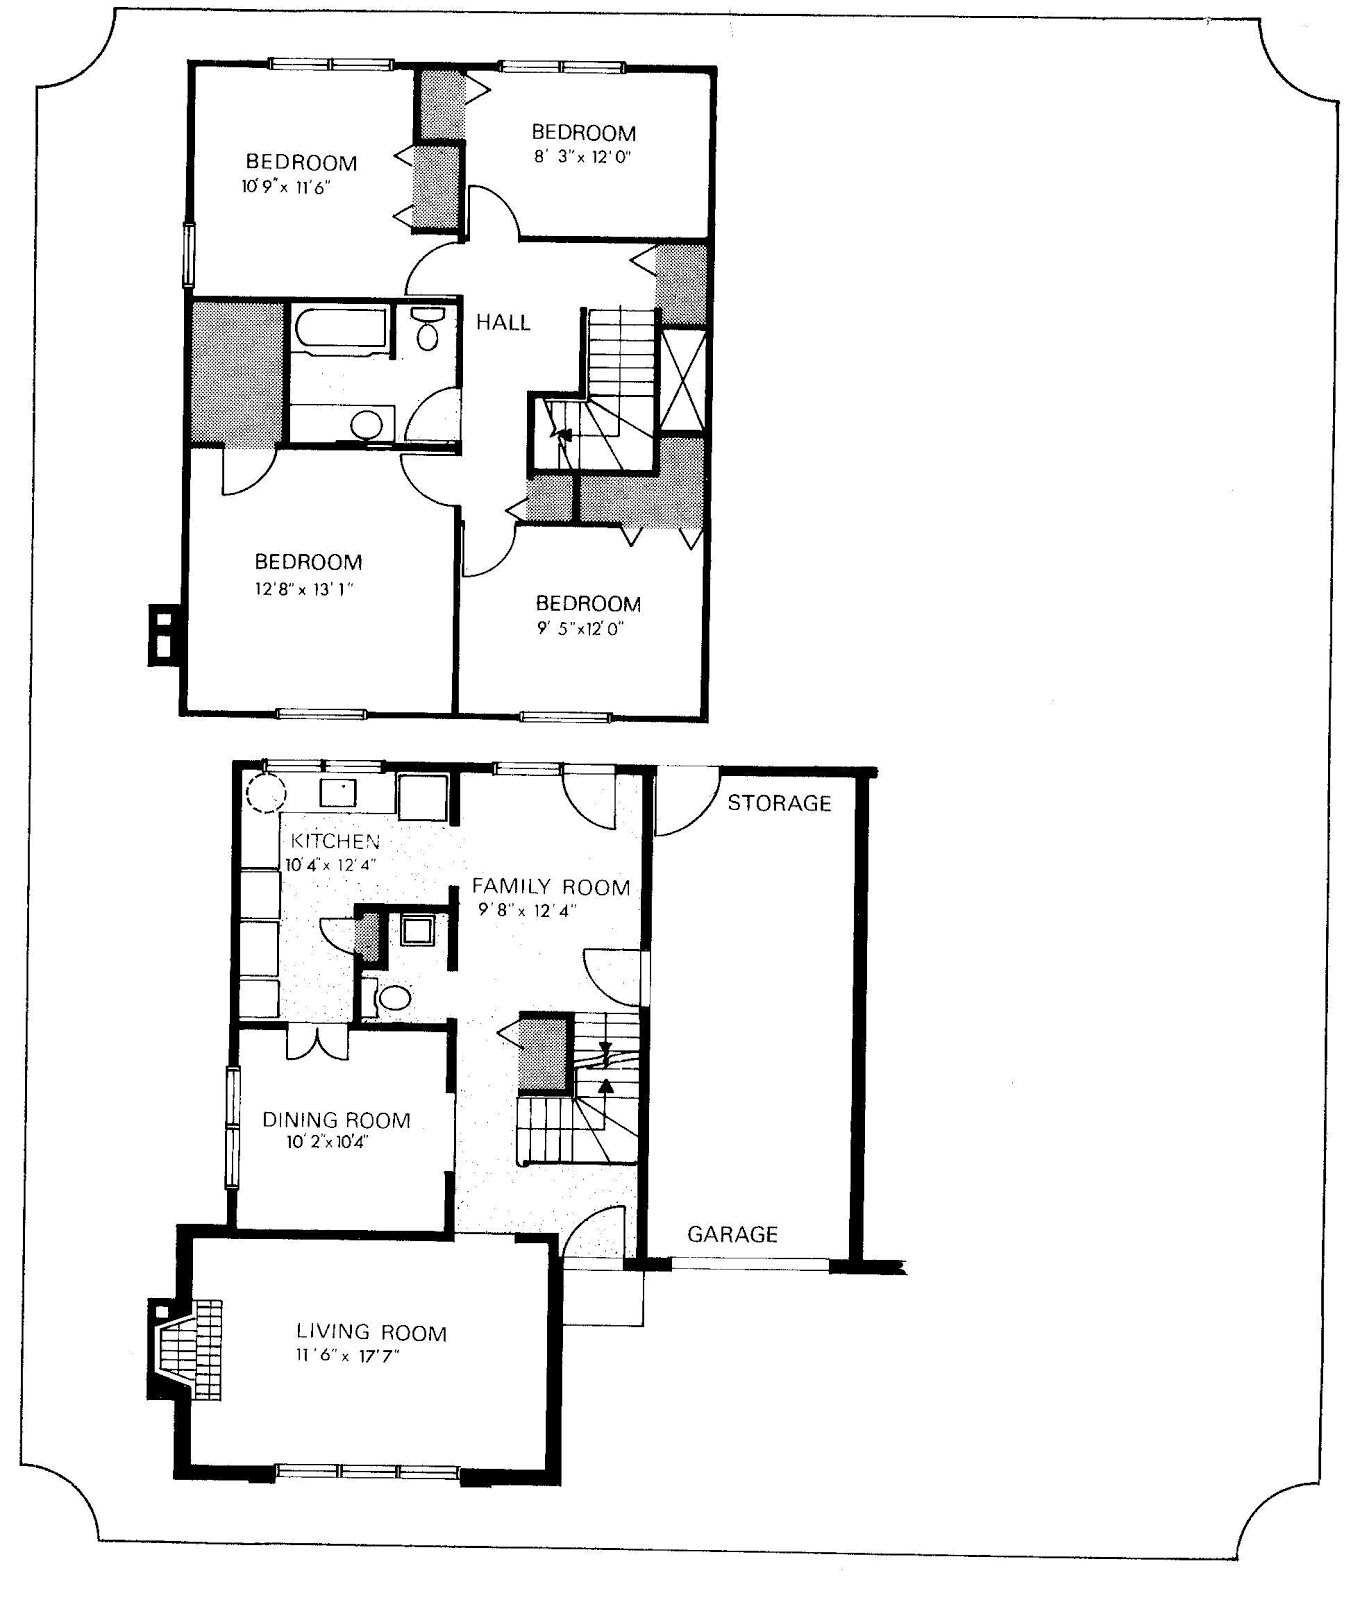 2011 03 01 archive as well Scholz Design Homes likewise 0  20677100 21286922 00 further 114103747 further Round Hospital. on 1960s home floor plans